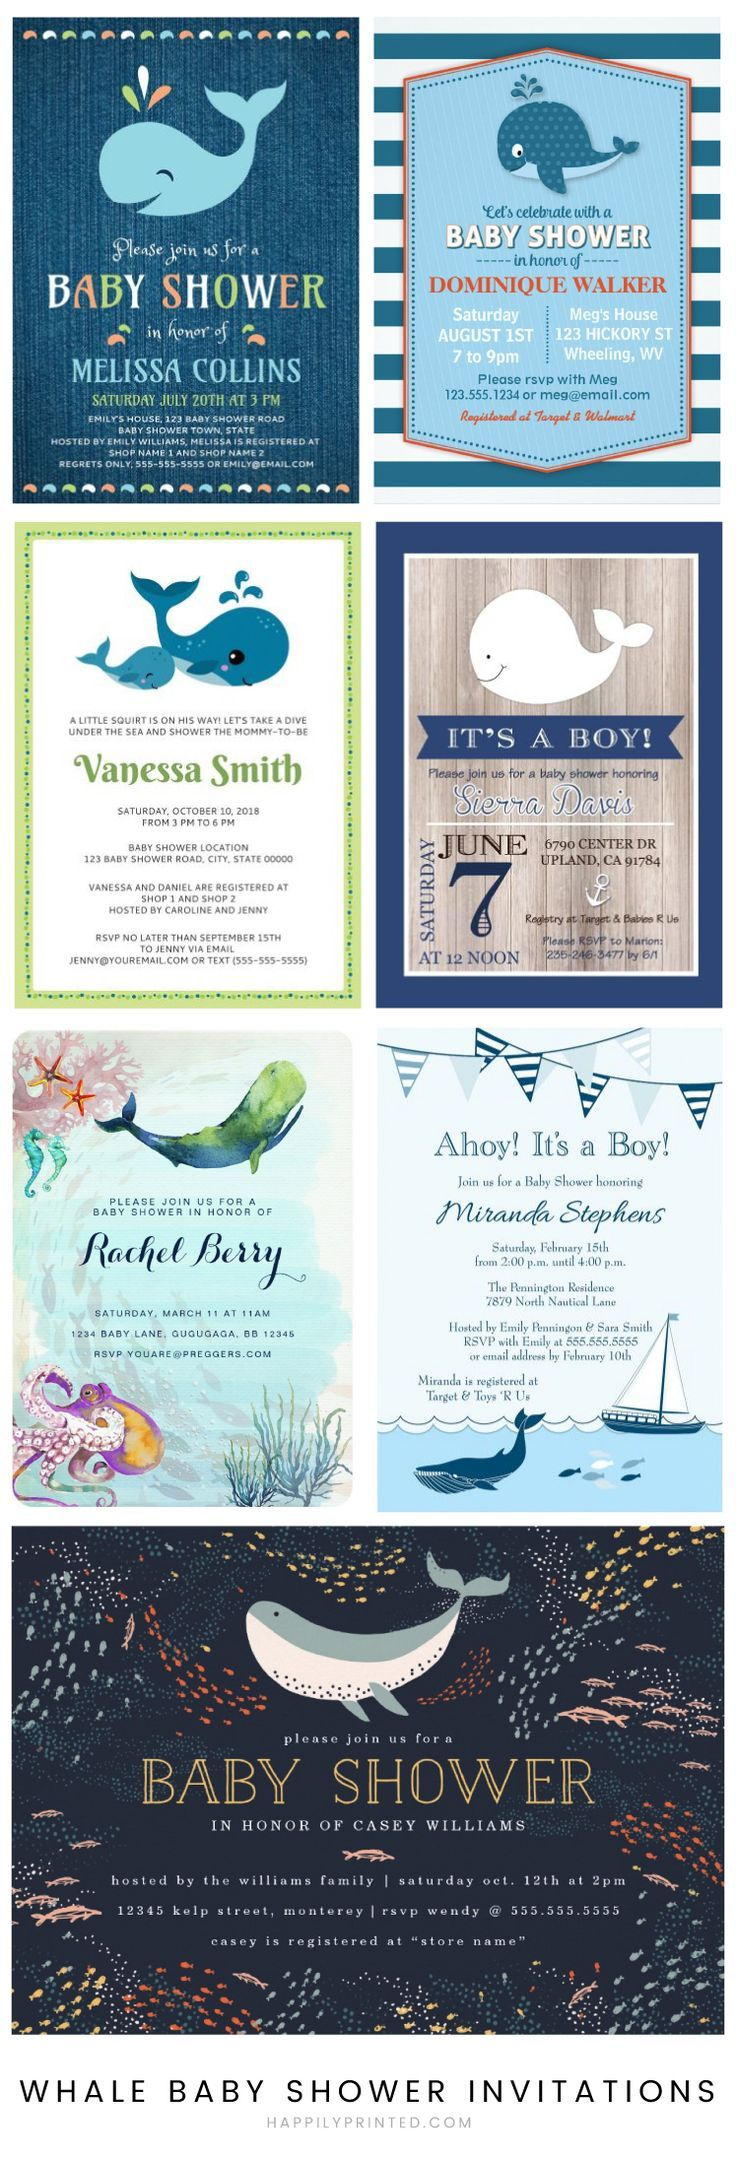 Whale baby shower invitations. Many under the sea theme designs for a baby boy or girl